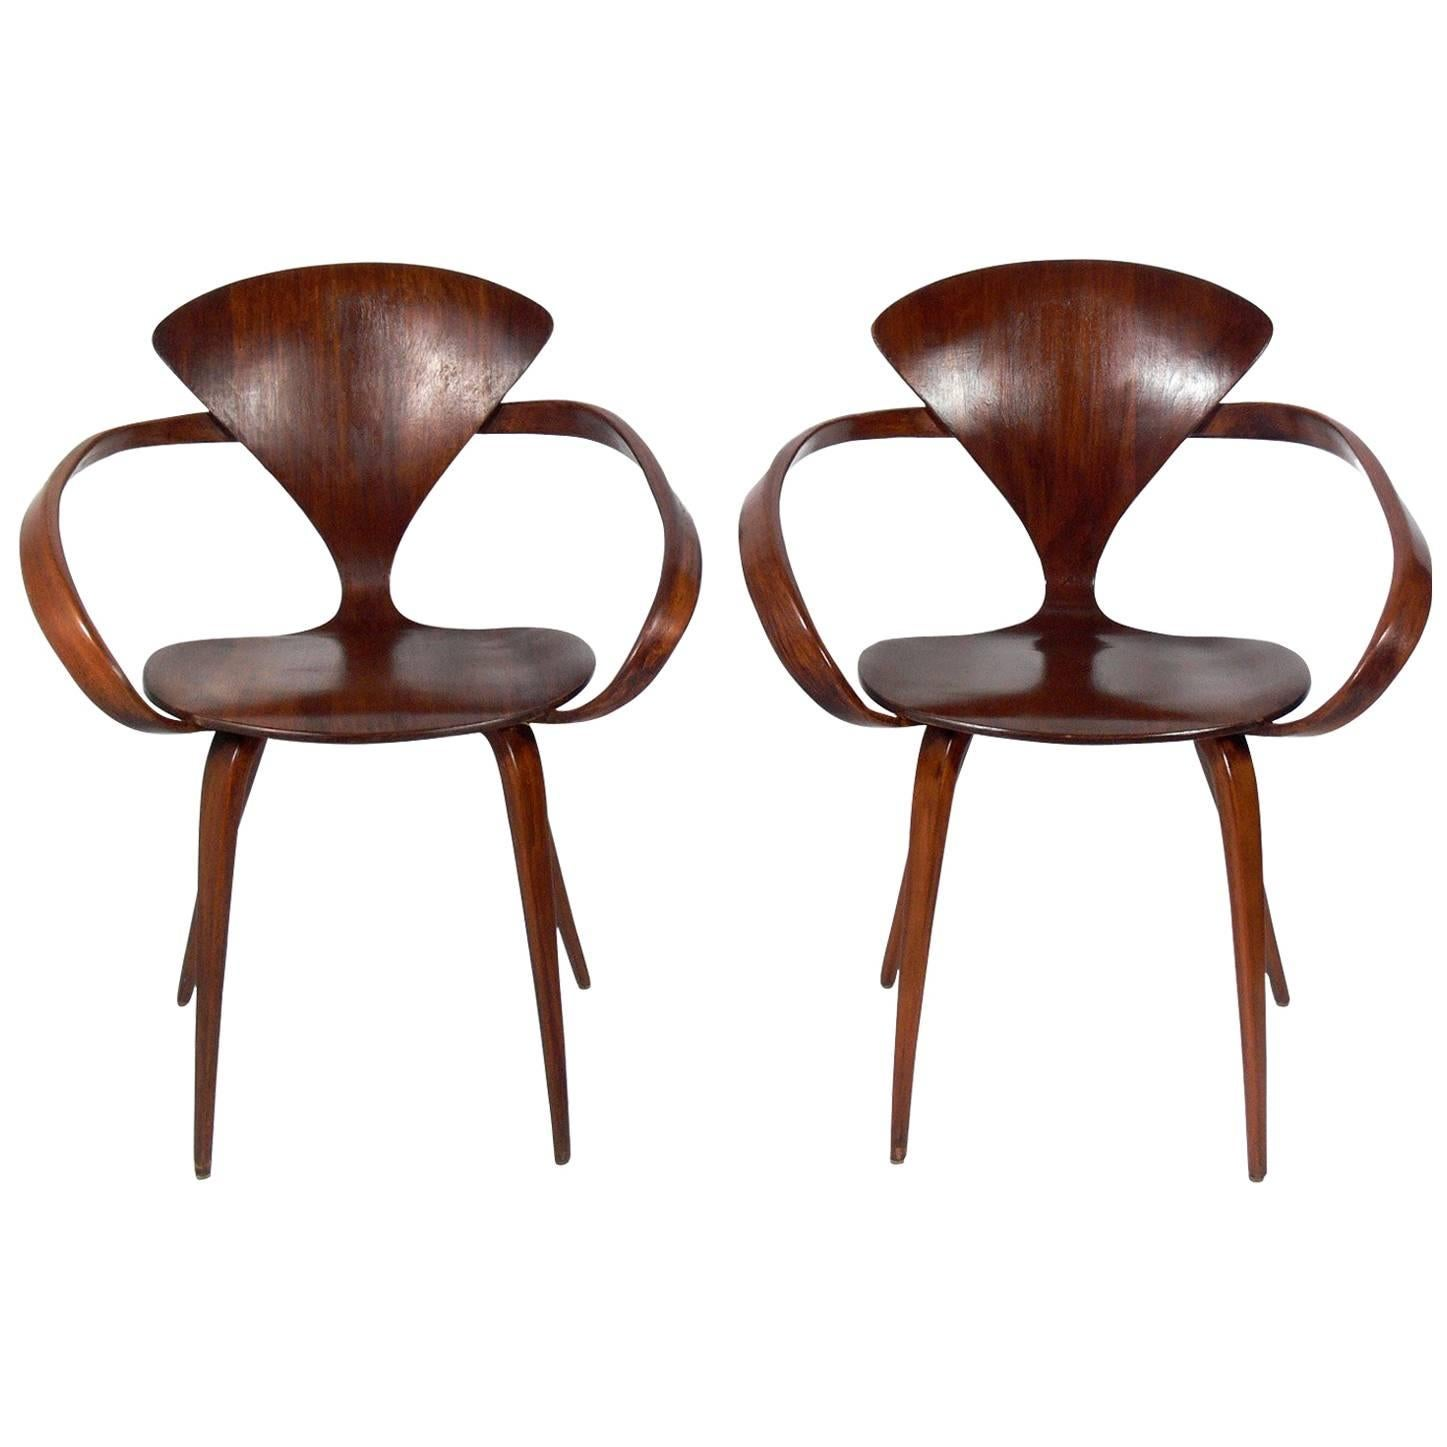 sculptural pair of armchairs by norman cherner for plycraft